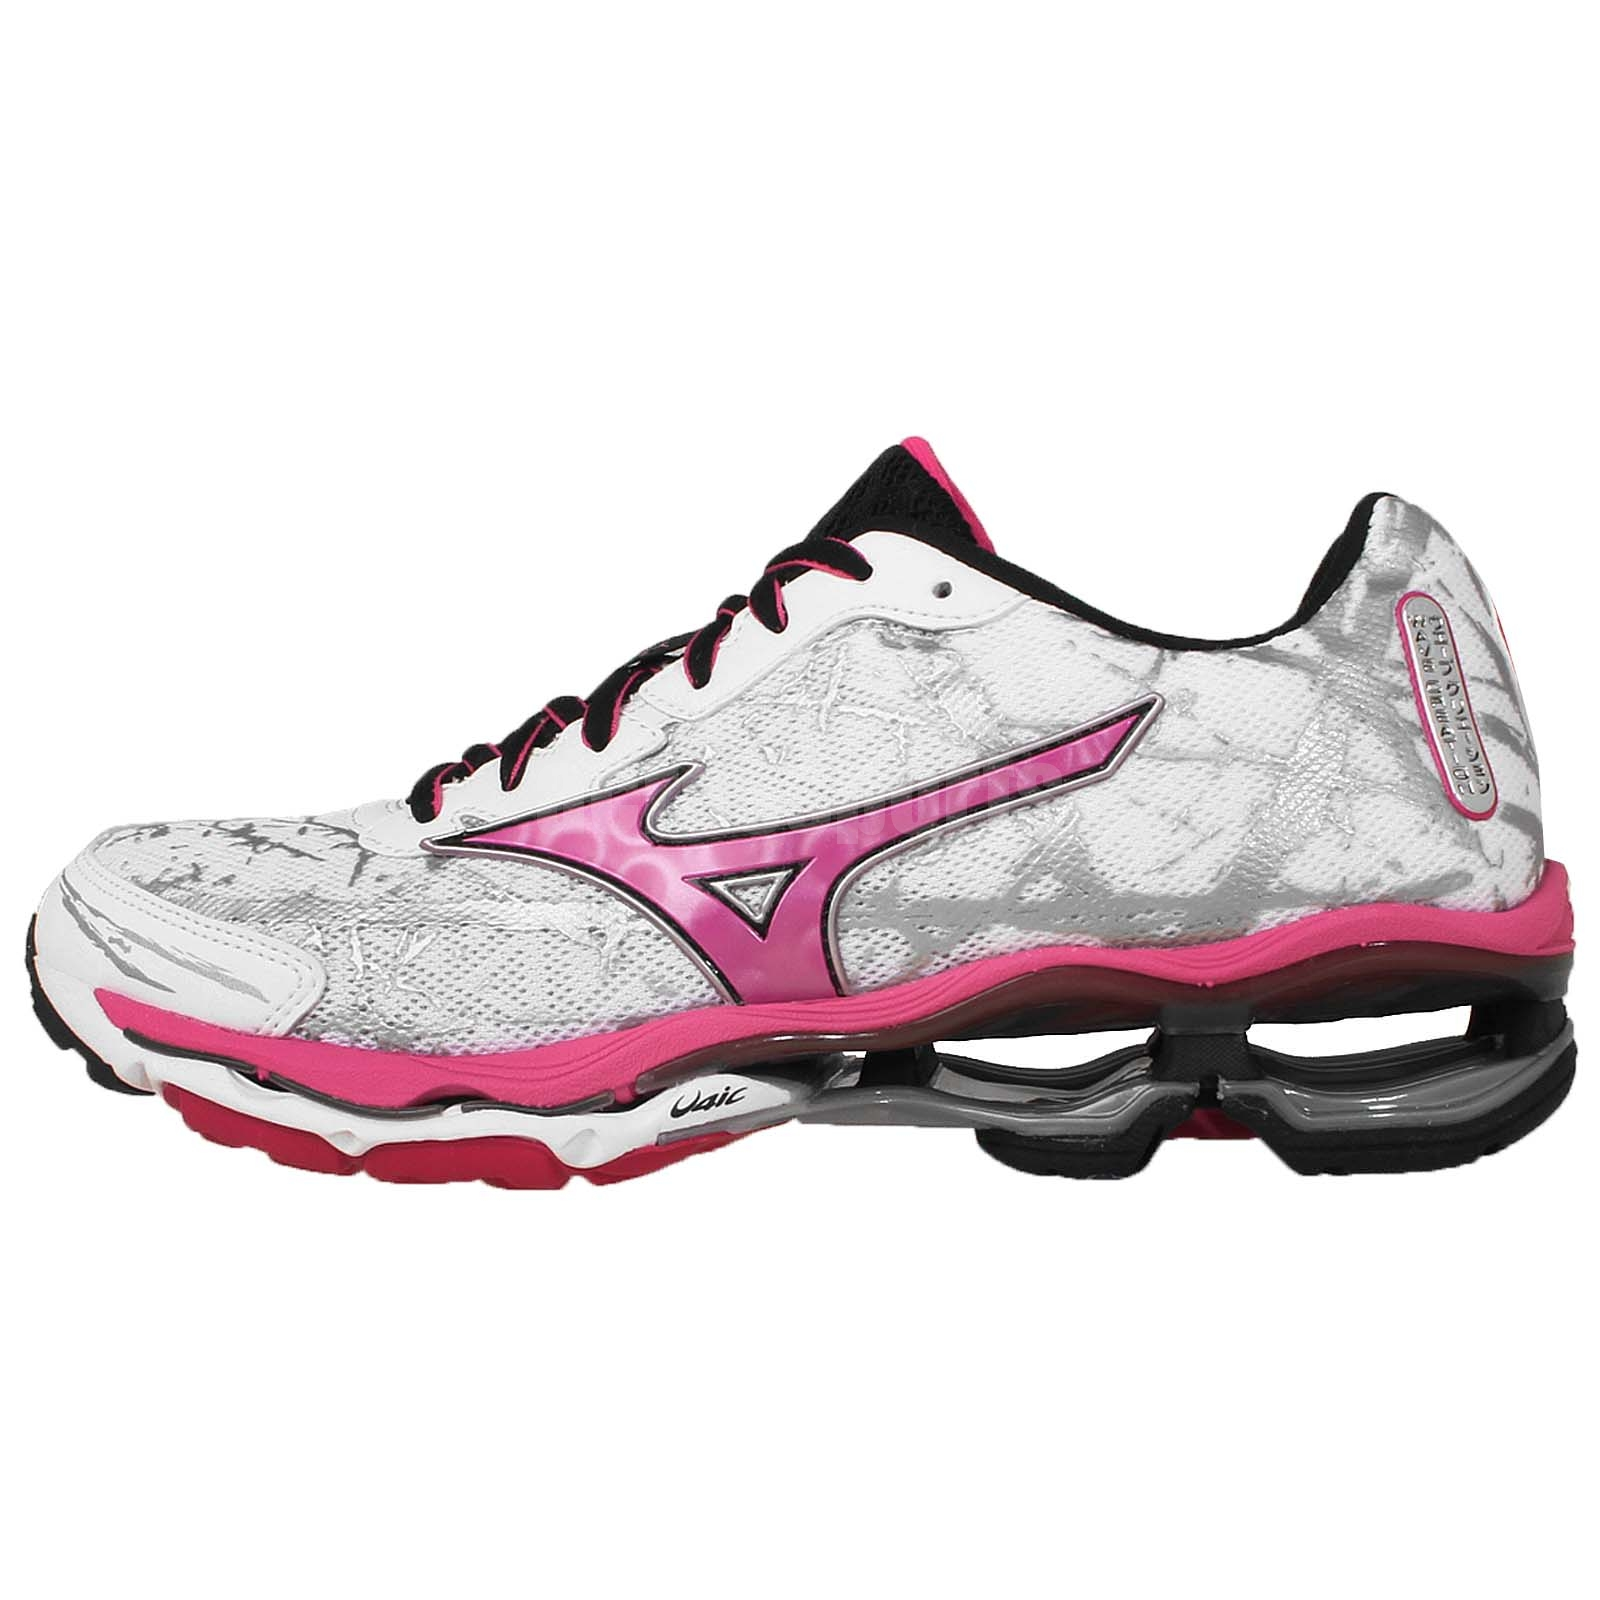 Mizuno Volleyball Shoes Size Chart